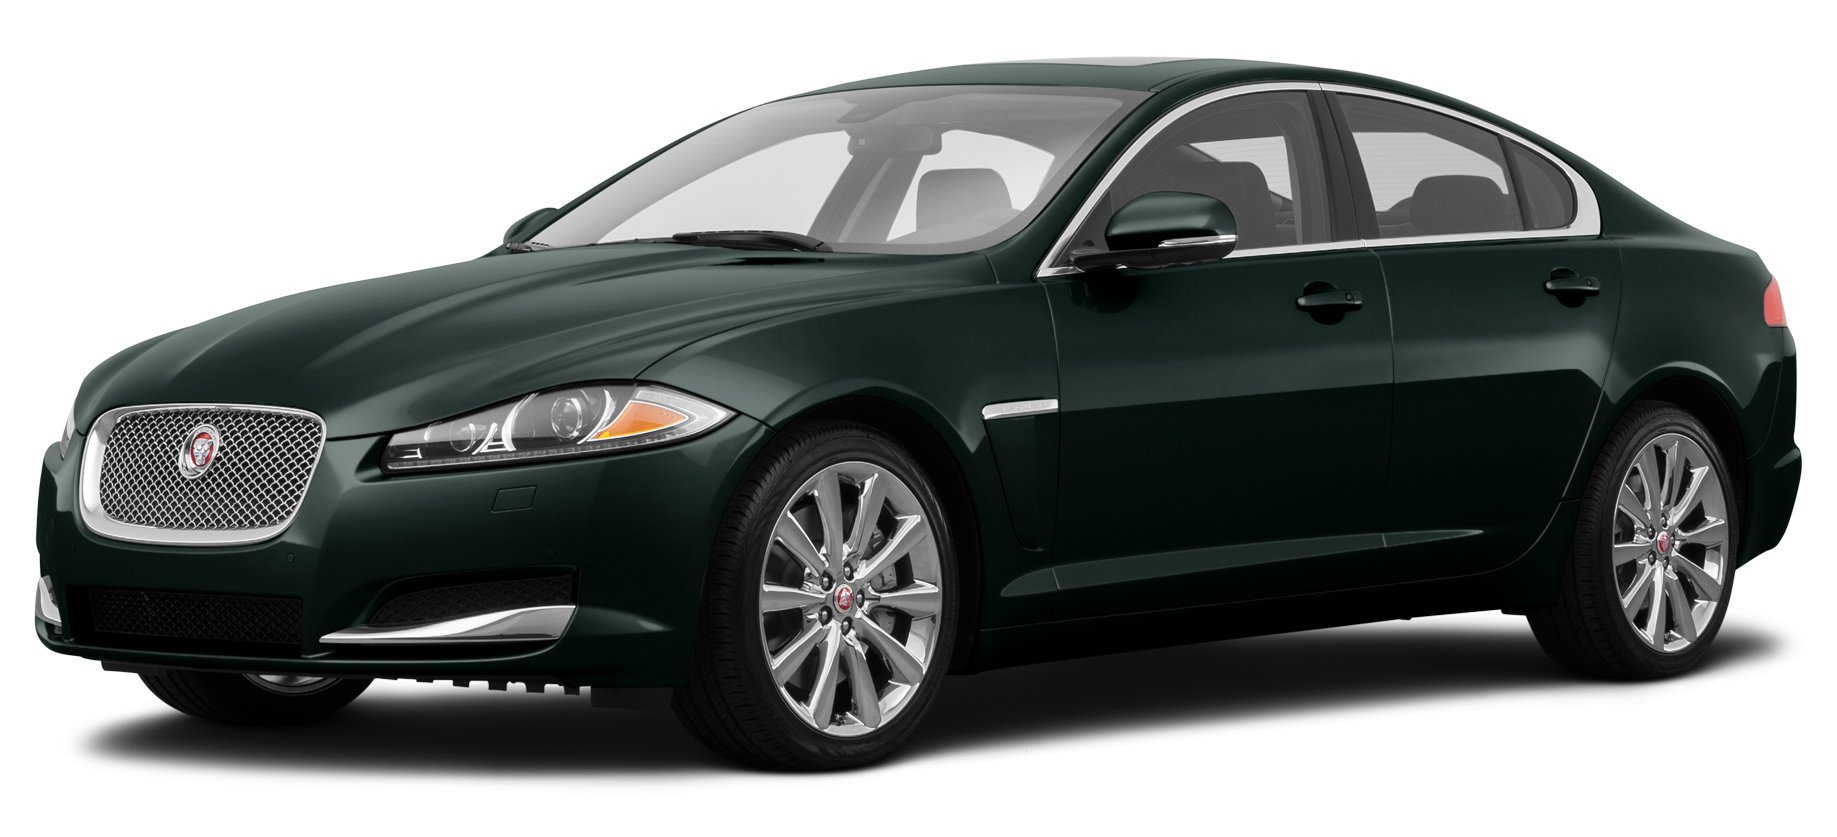 ... 2014 Jaguar XF V8 Supercharged, 4-Door Sedan Rear Wheel Drive ...